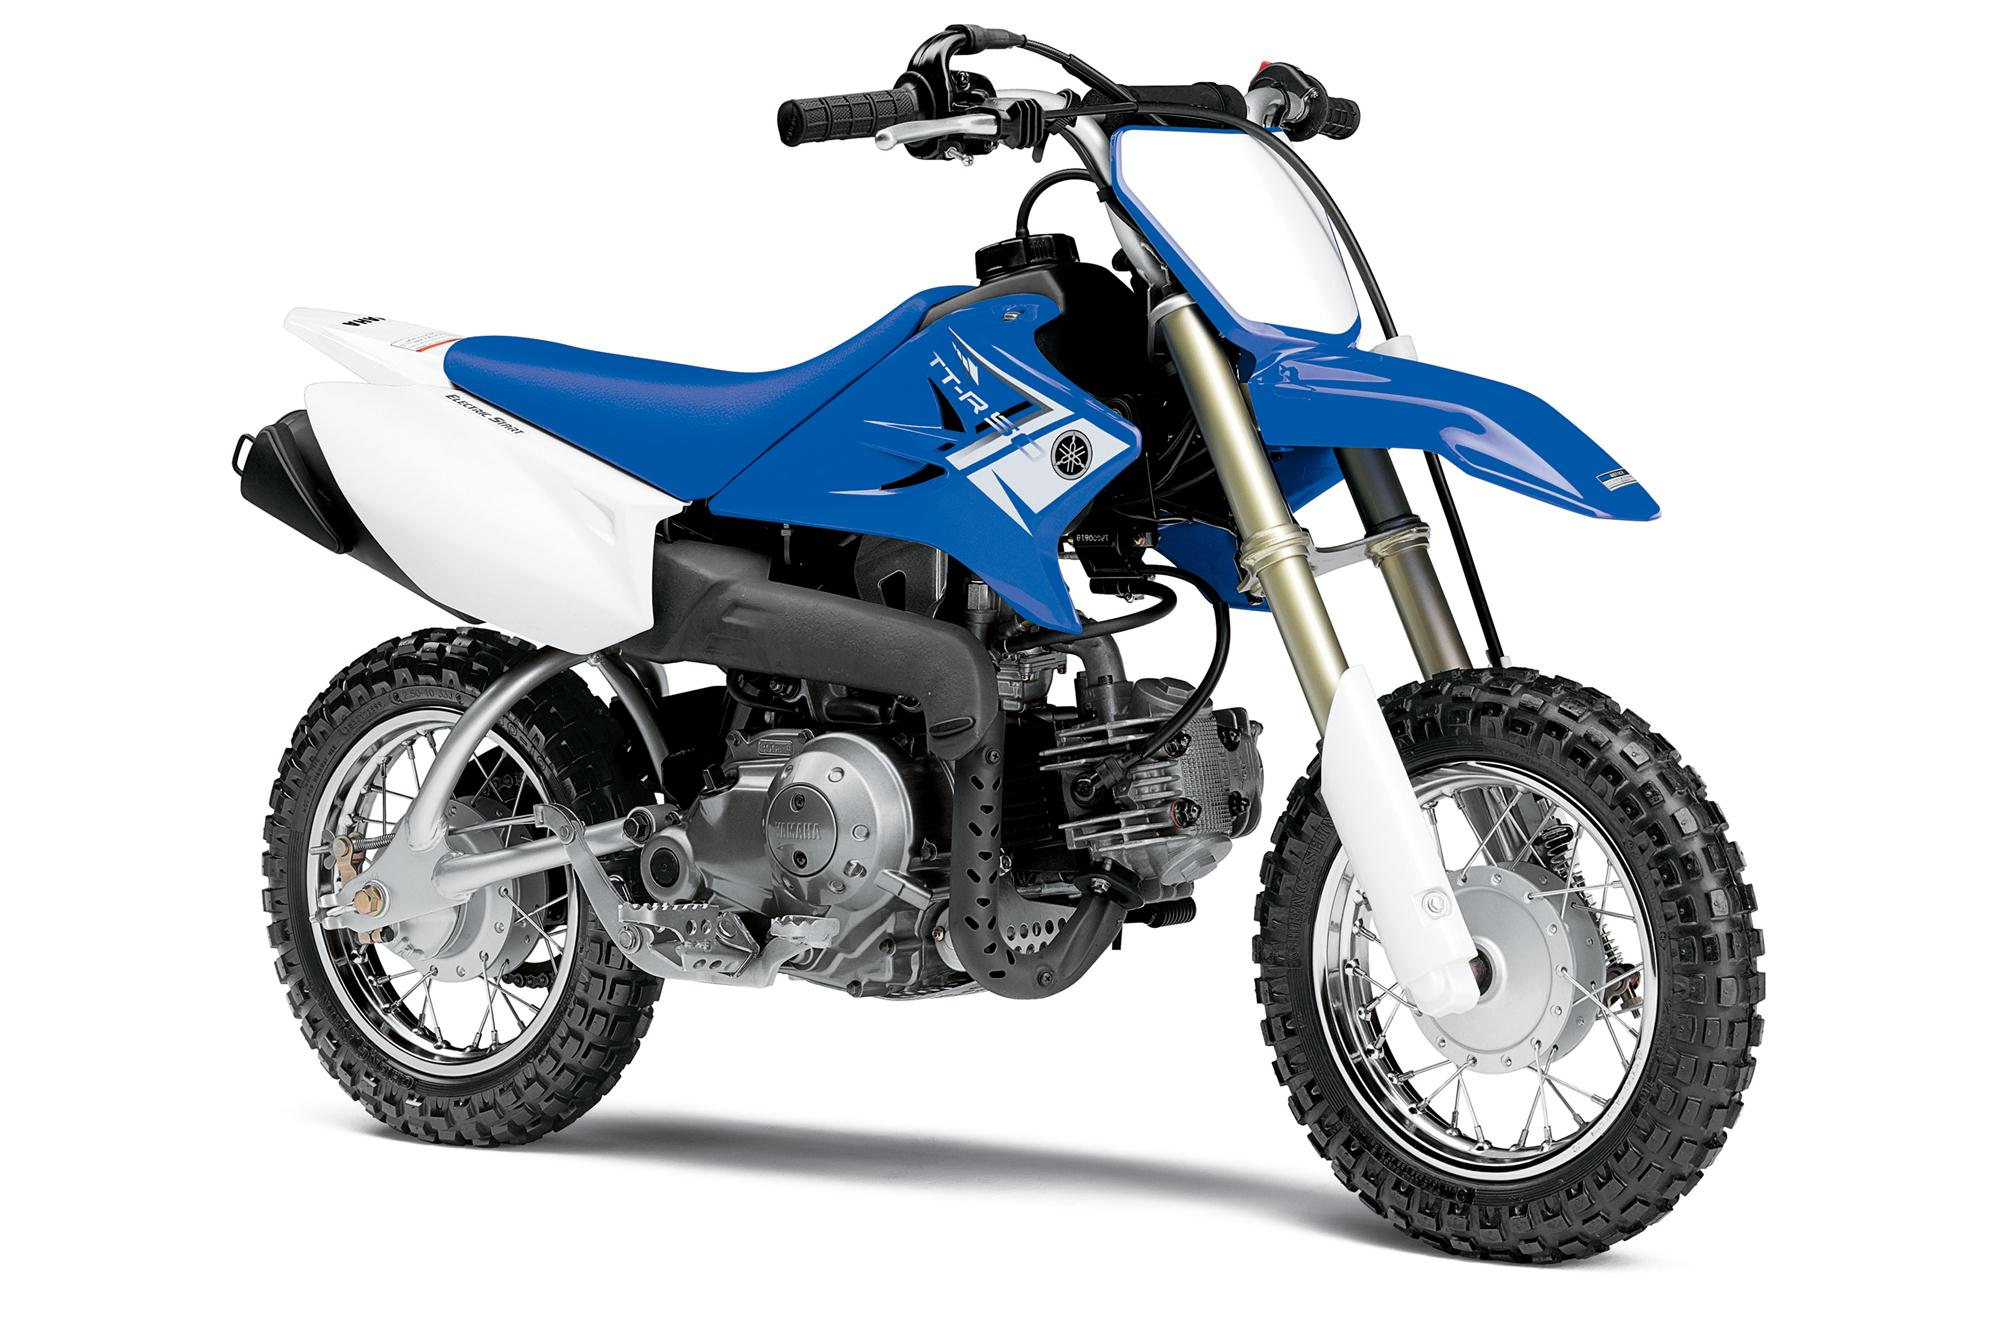 yamaha dirt bikes images - photo #34